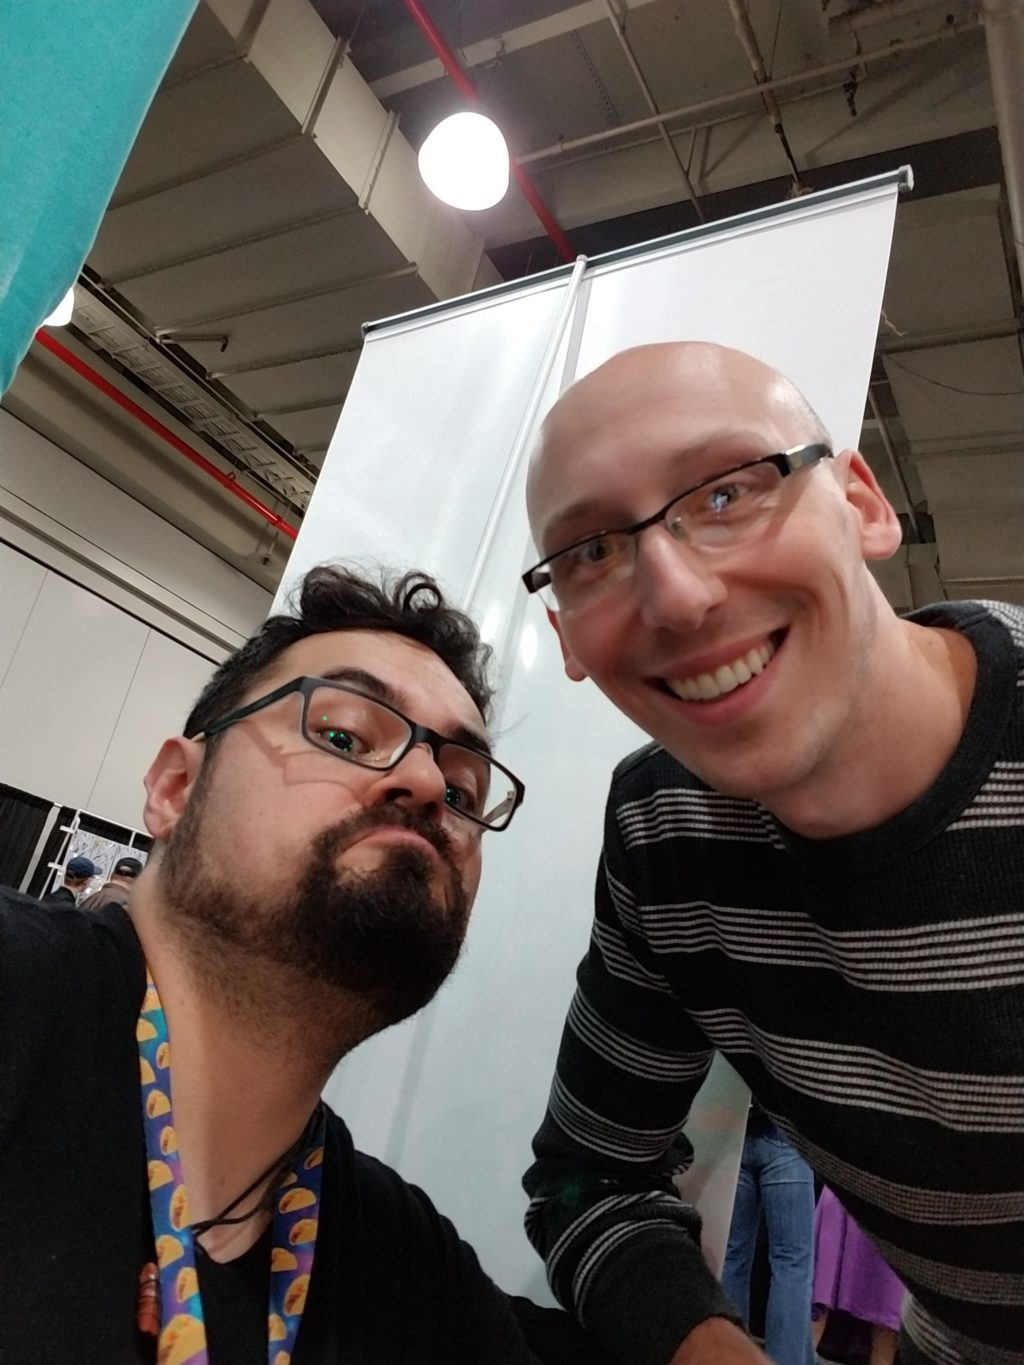 artist gabo and trevor mueller in artist alley nycc 2018